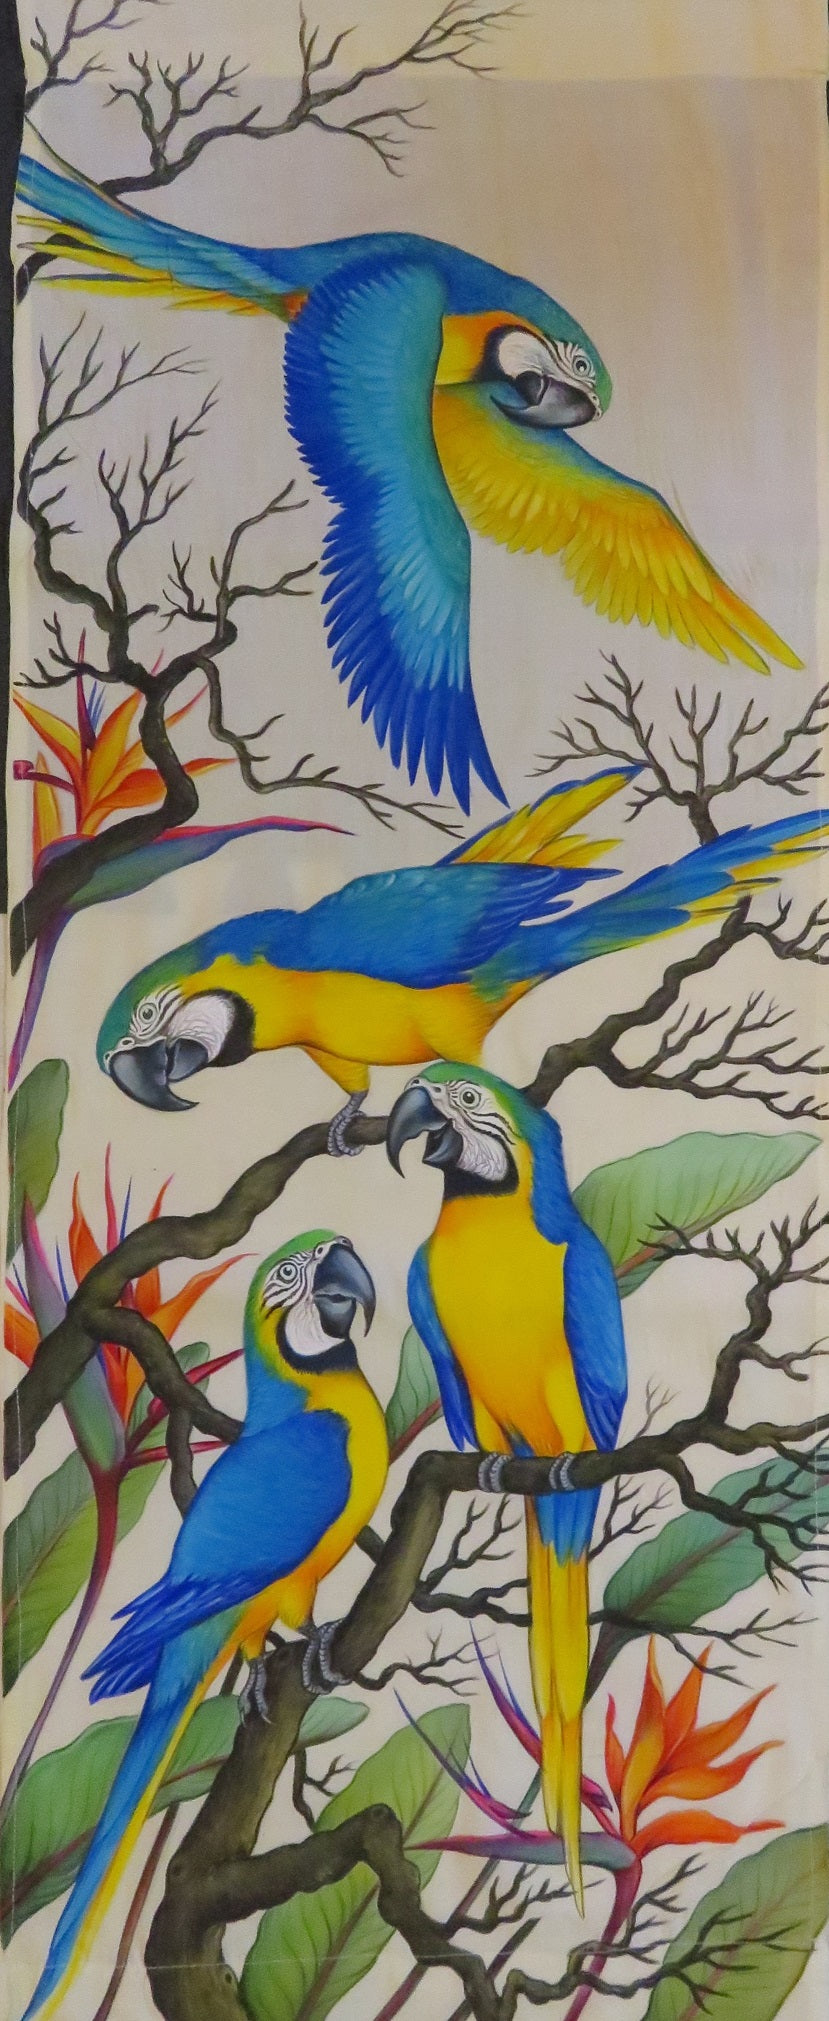 Blue & Gold Macaws original acrylic painting on rayon - no framing needed!